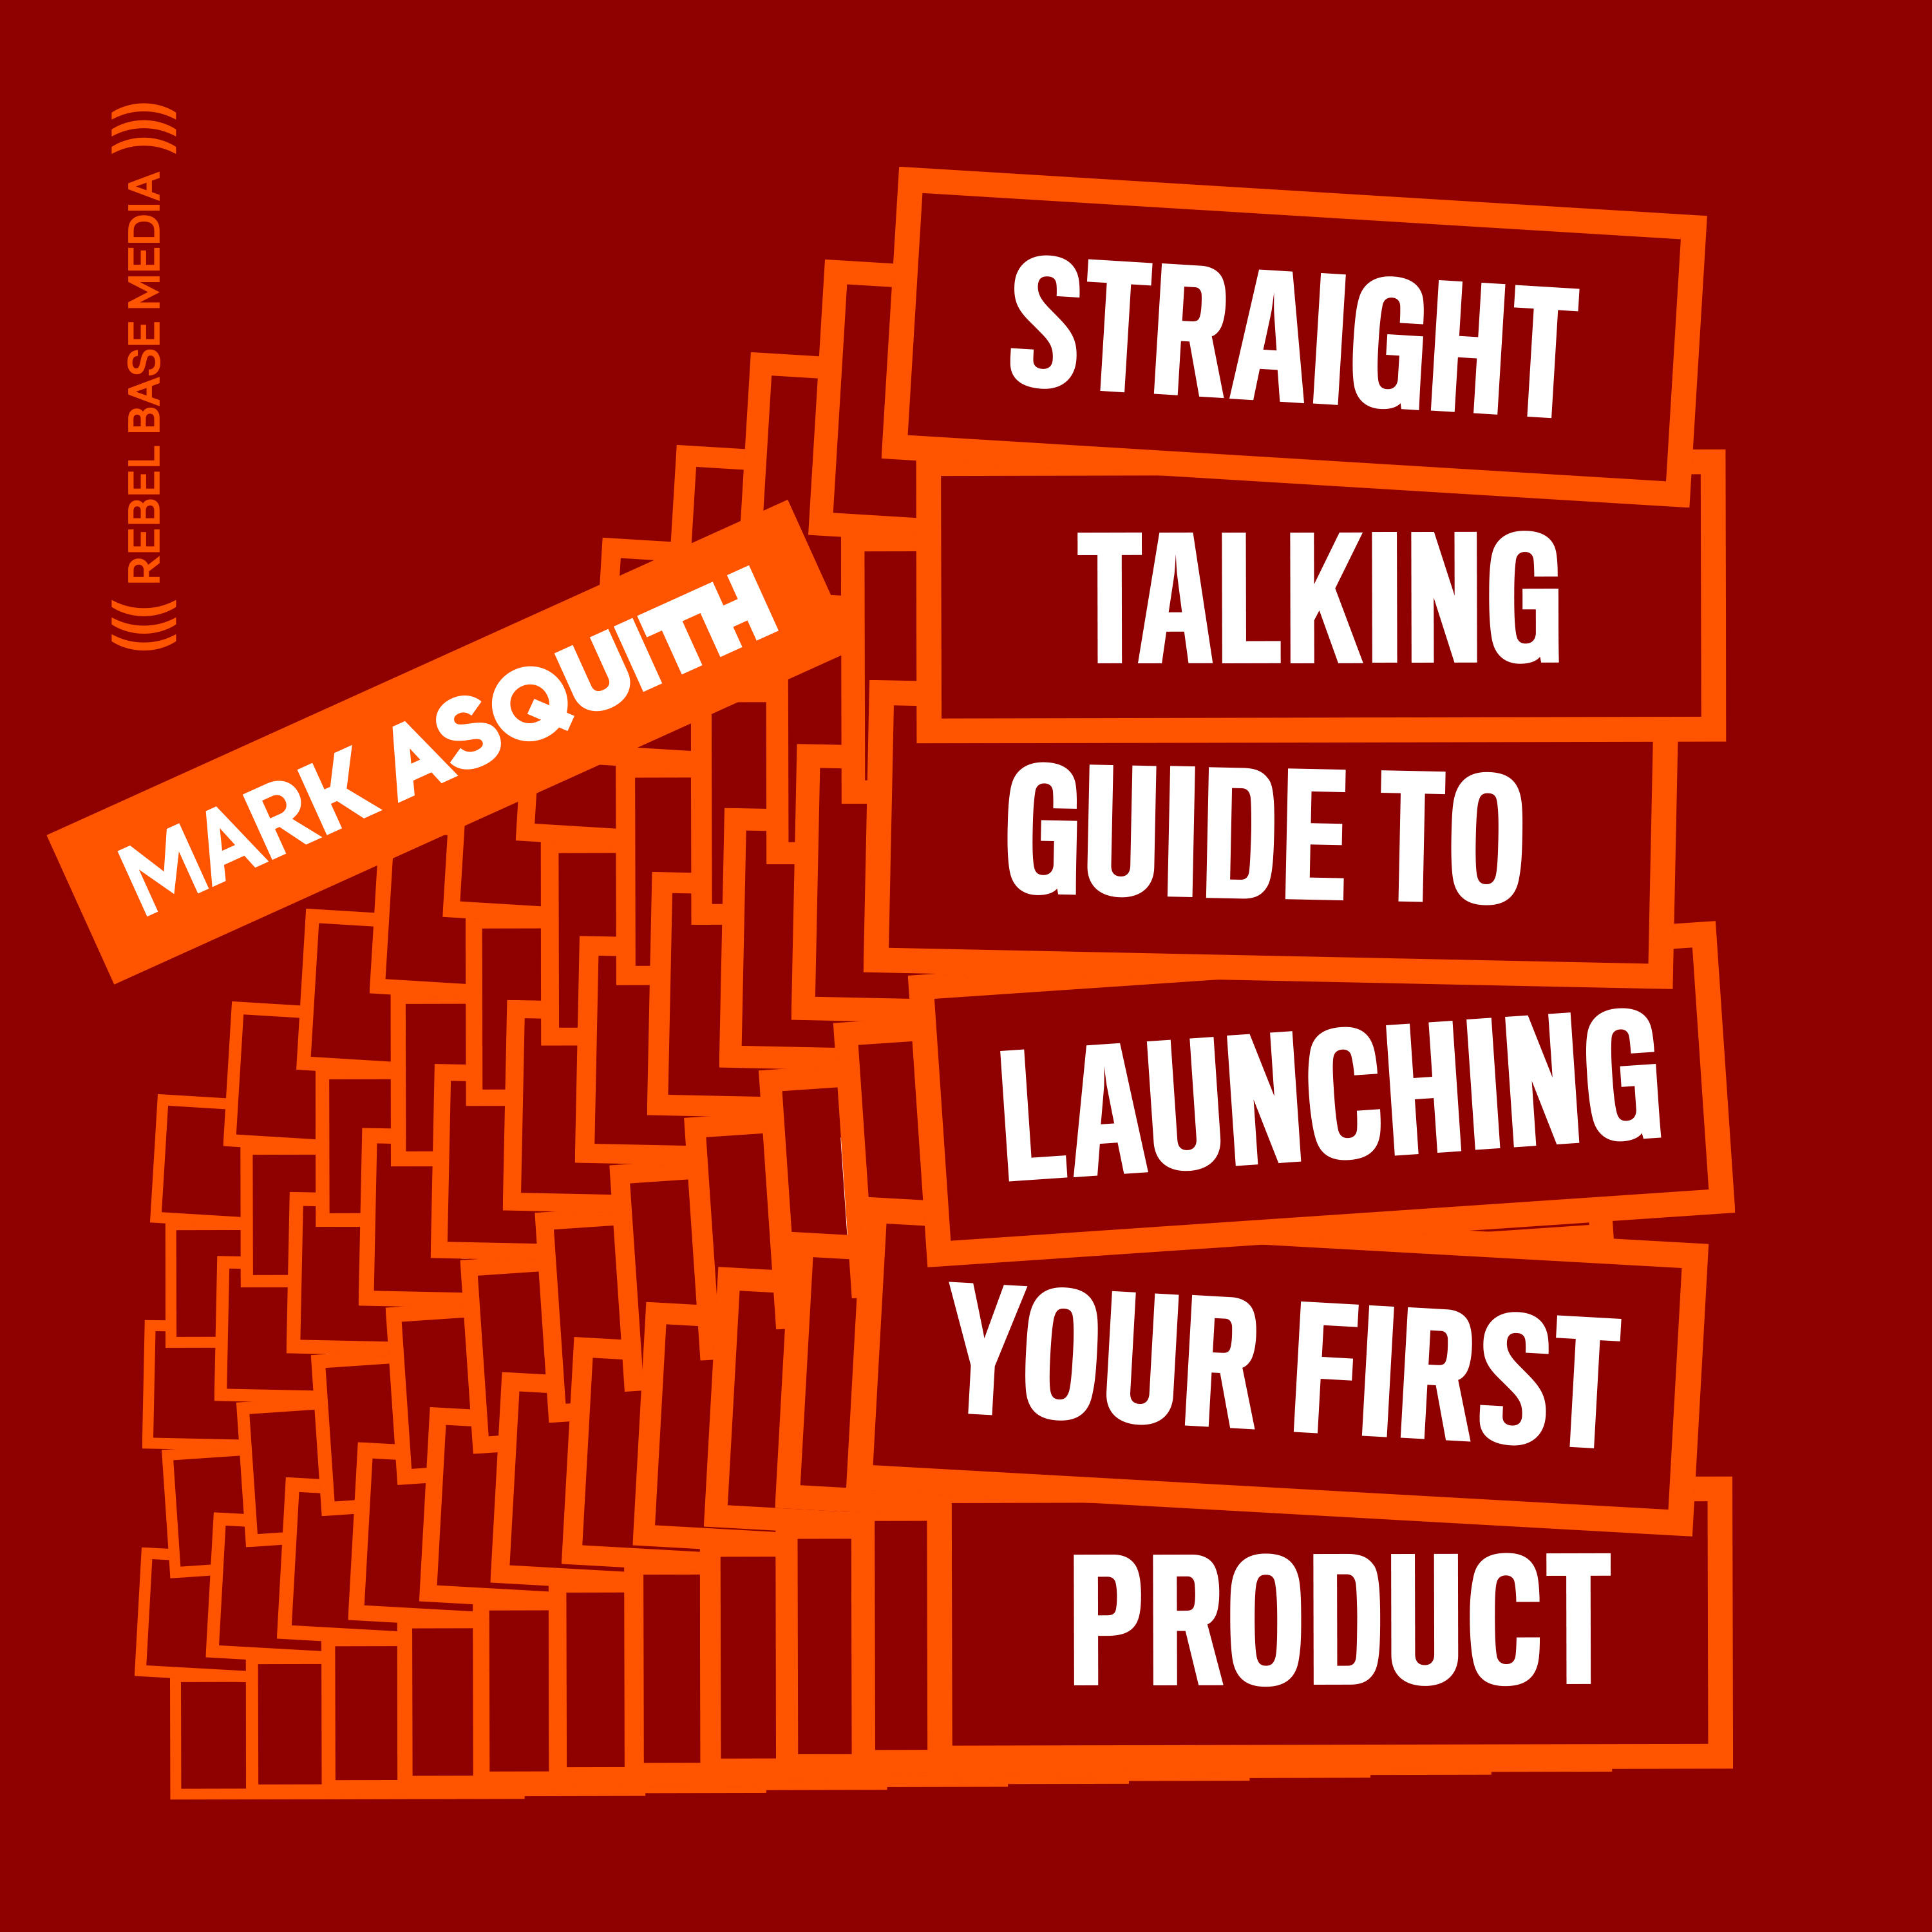 Artwork for podcast The Straight Talking Guide to Launching Your First Product